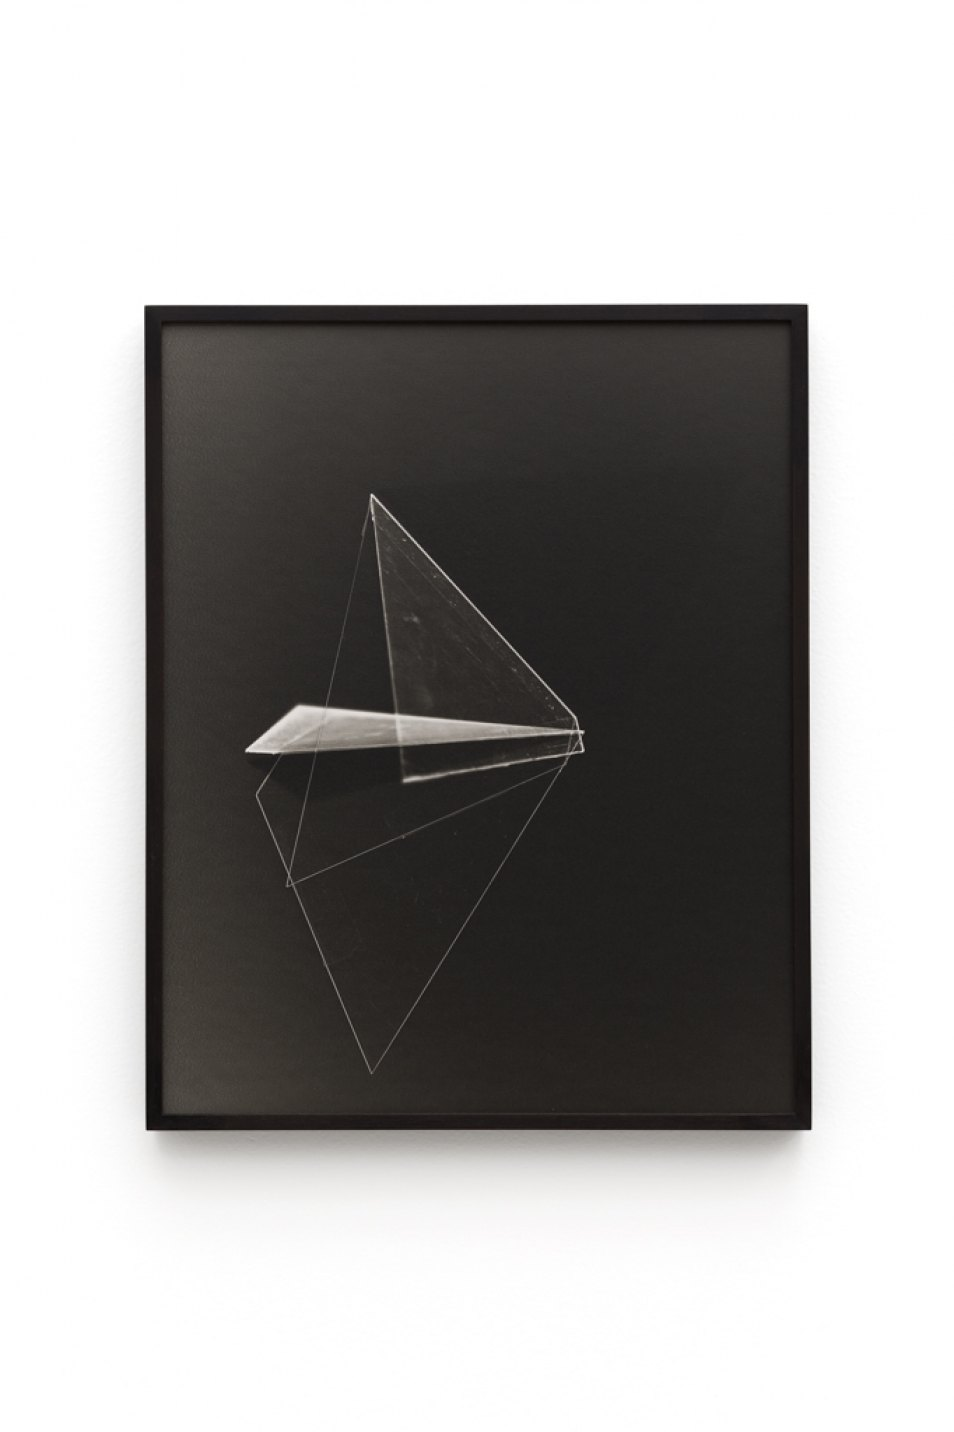 Leticia Ramos,&nbsp;<em>BICHOS</em>,&nbsp;2017,&nbsp;silver print and photogram,&nbsp;40 × 50 cm - Mendes Wood DM